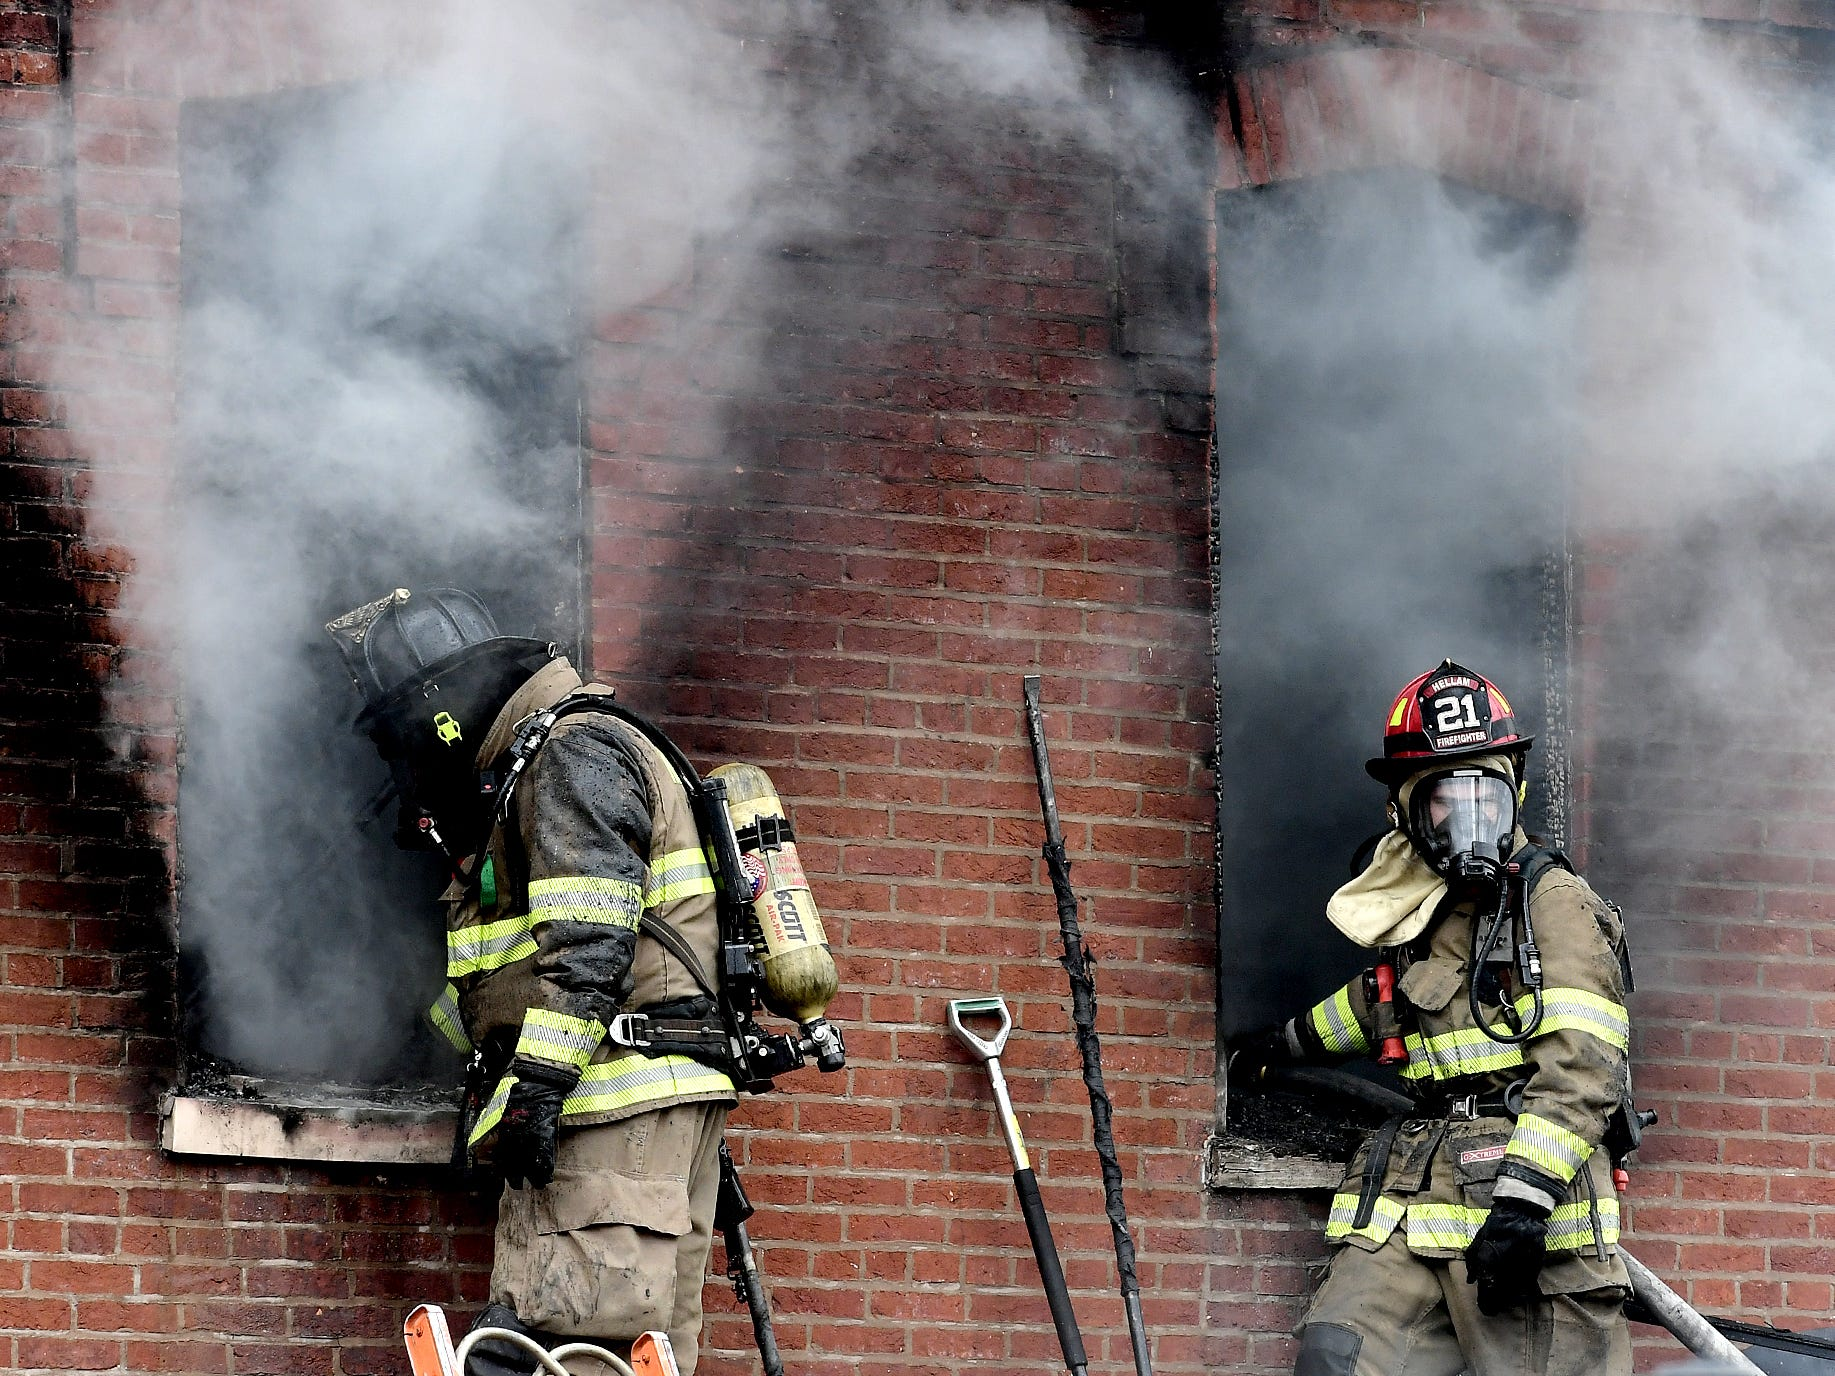 Firefighters battle a blaze at a house in the 200 block of Walnut Street in Wrightsville Monday, April 15, 2019. At about 12:50 p.m., firefighters inside the burning building were ordered via radio transmissions to evacuate immediately. Bill Kalina photo